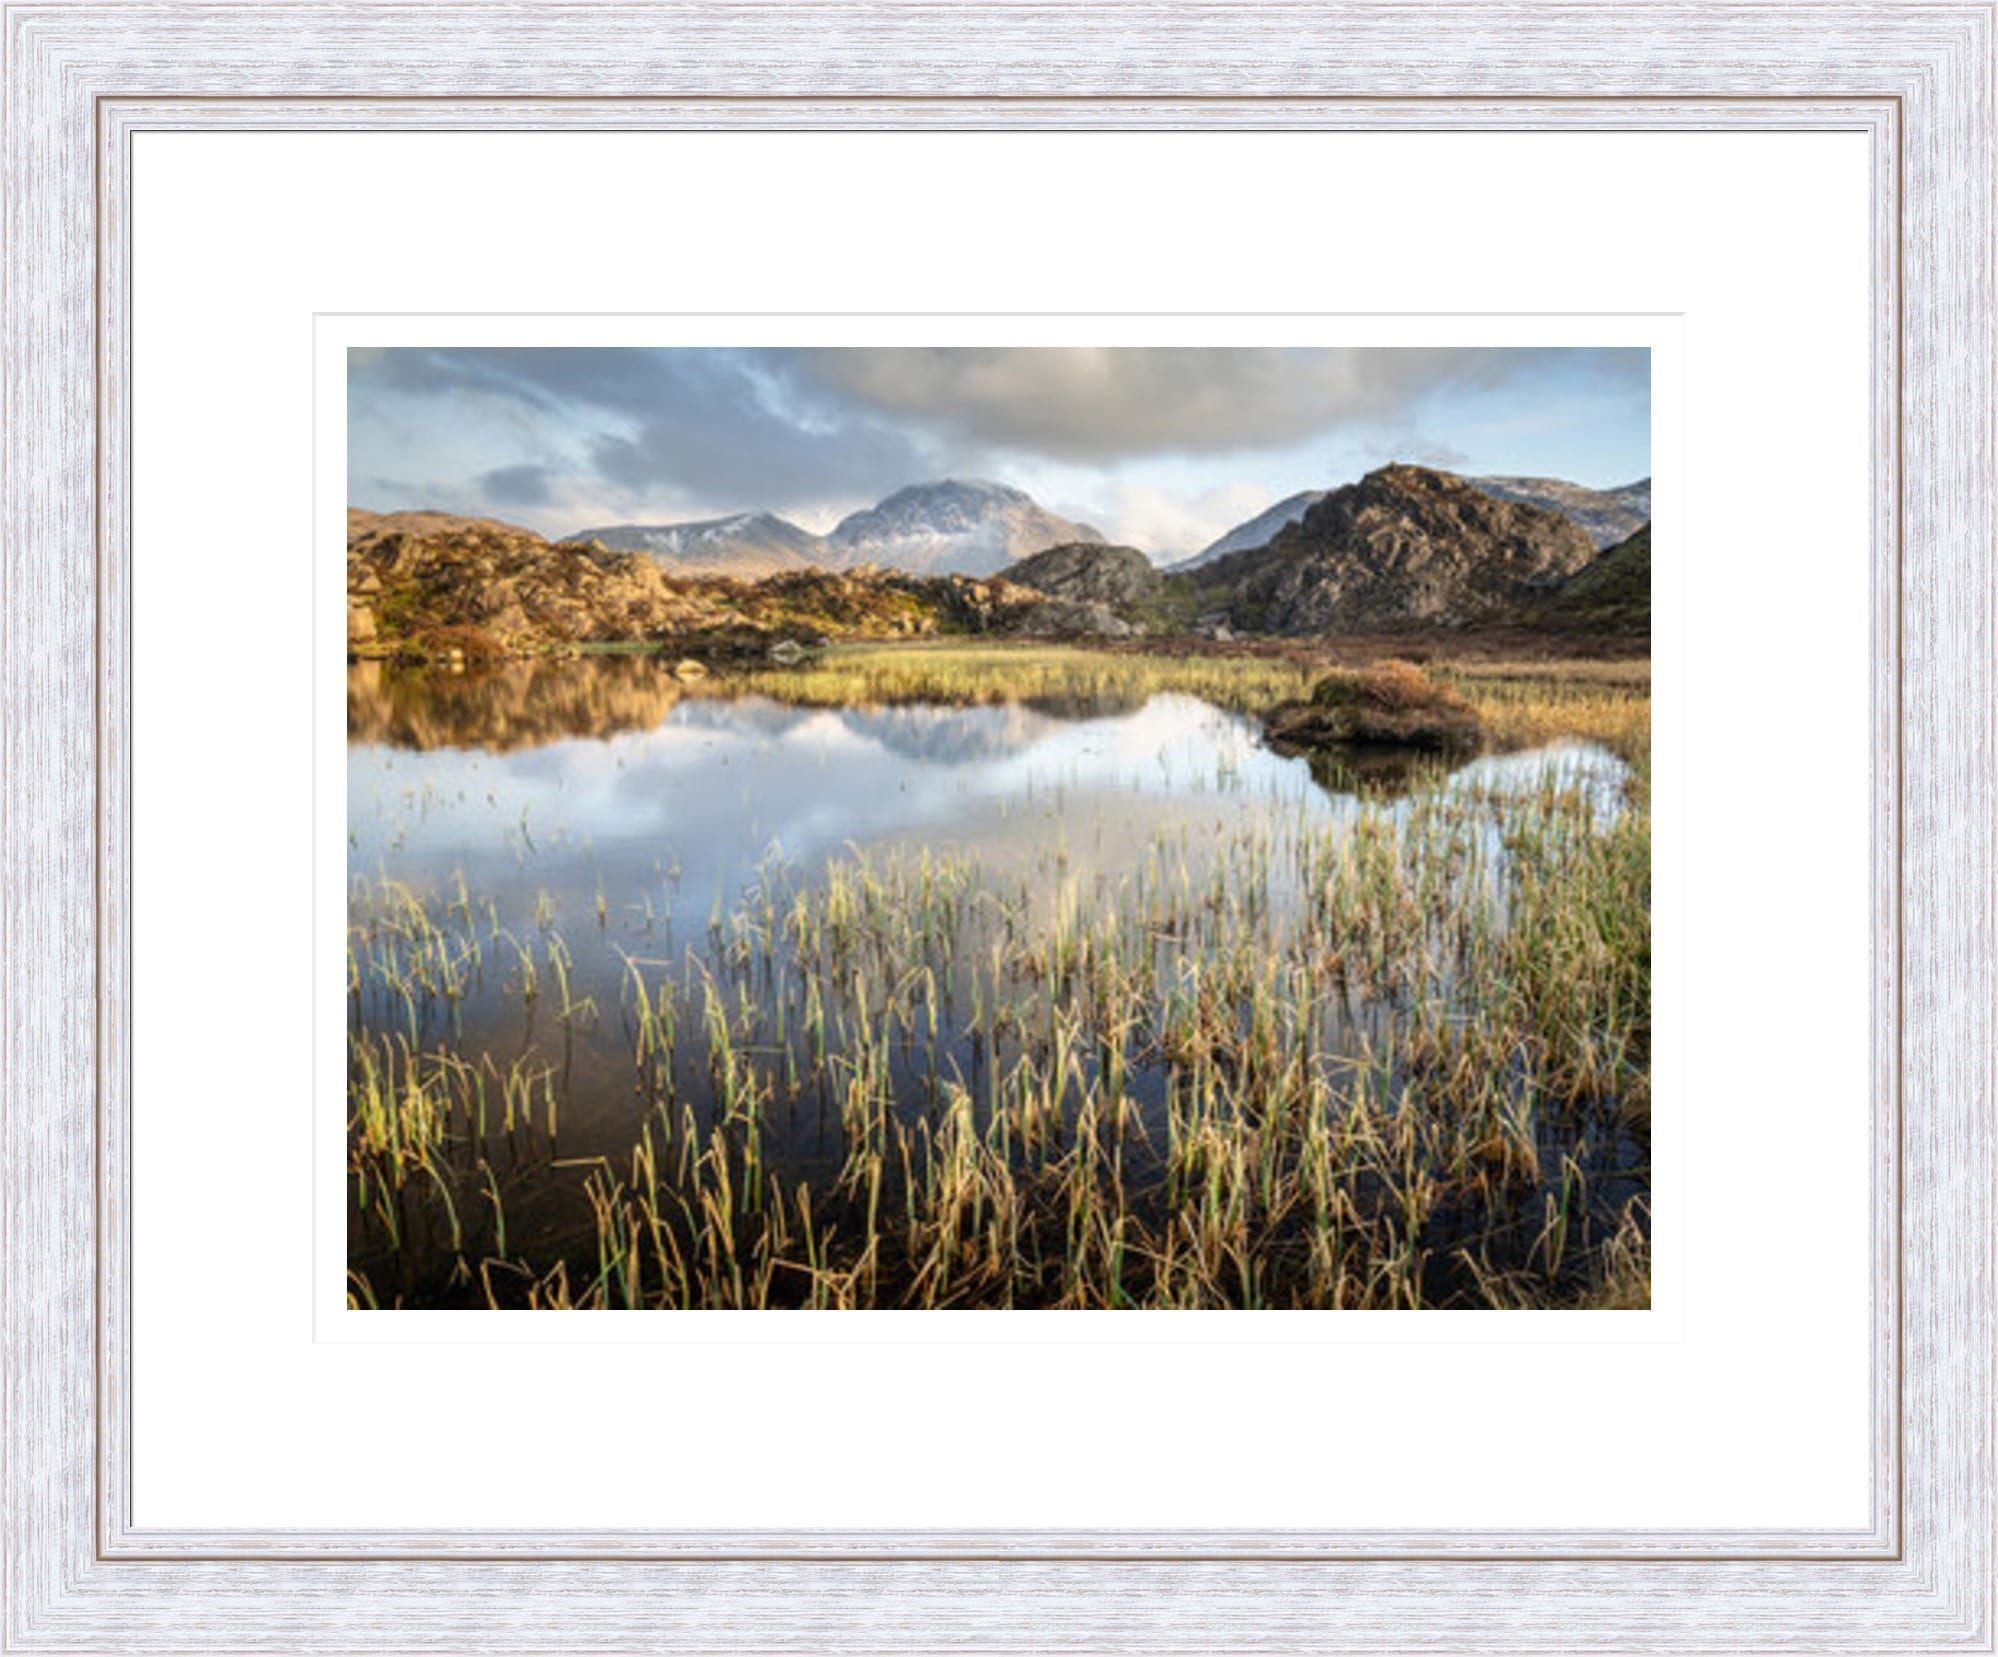 42mm Holkham Lake District Framed Print